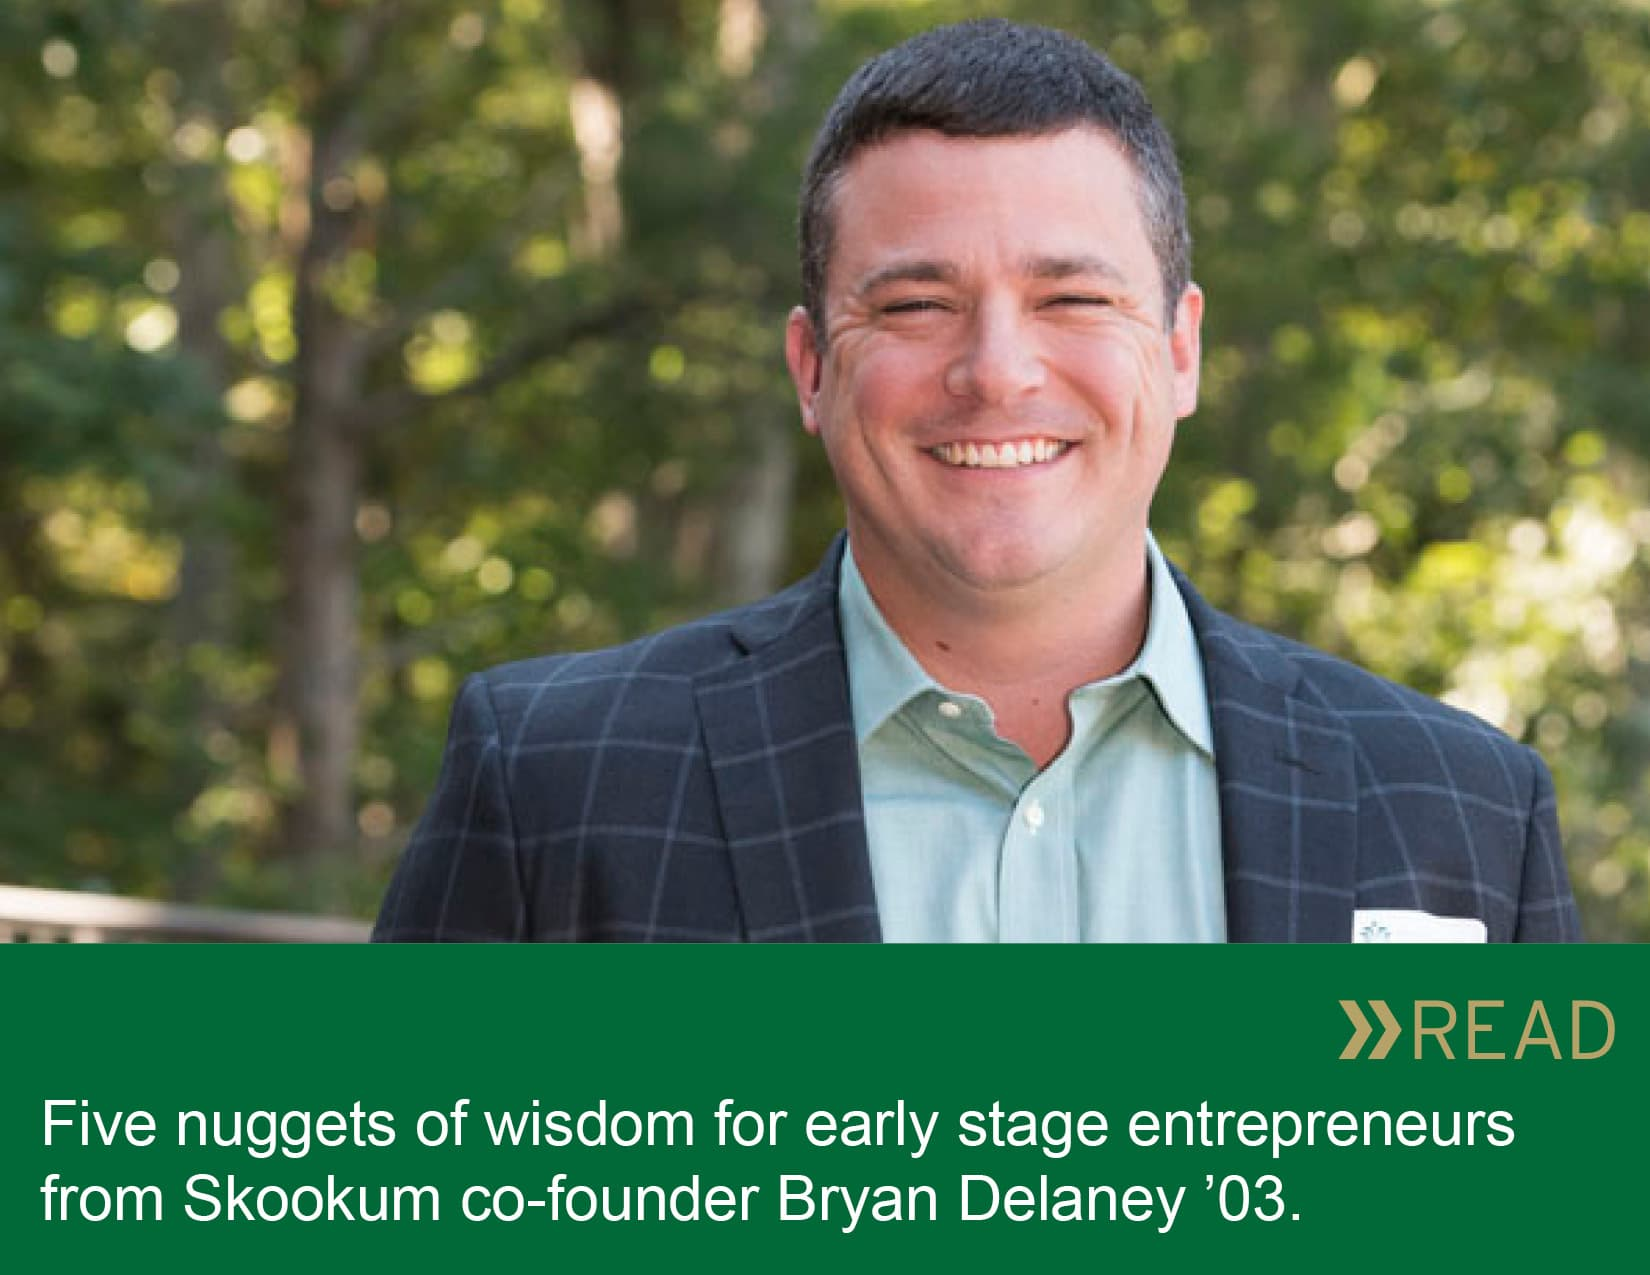 Five Nuggets of wisdom for early stage entrepreneurs from Bryan Delaney '03